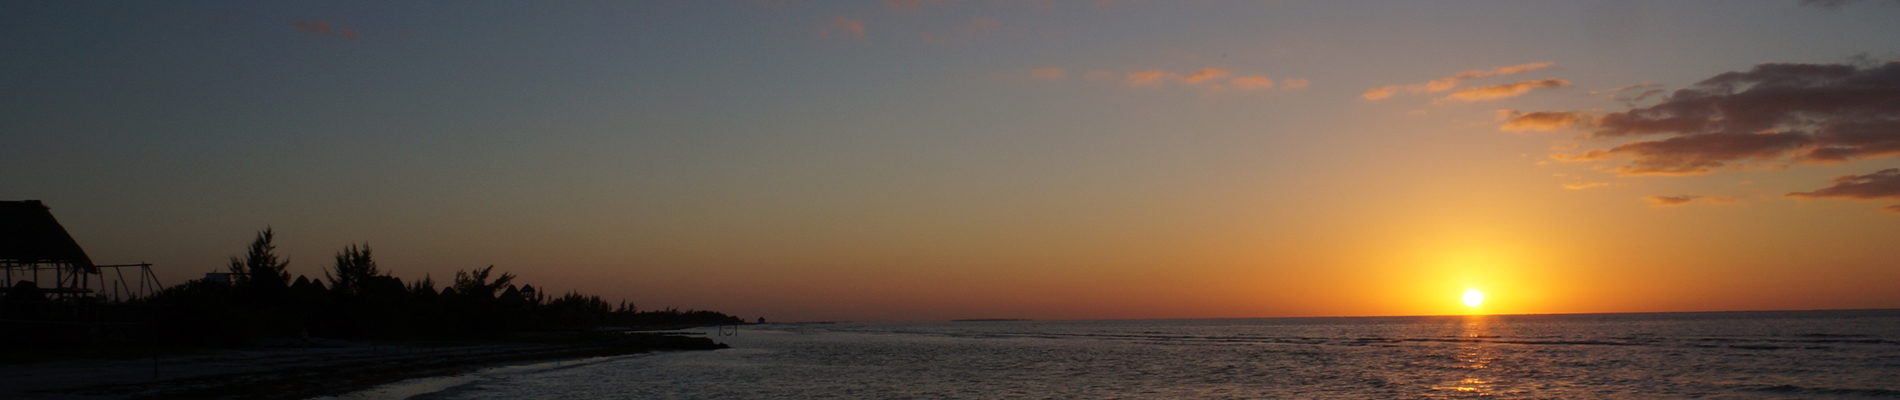 Sunset in isla Holbox